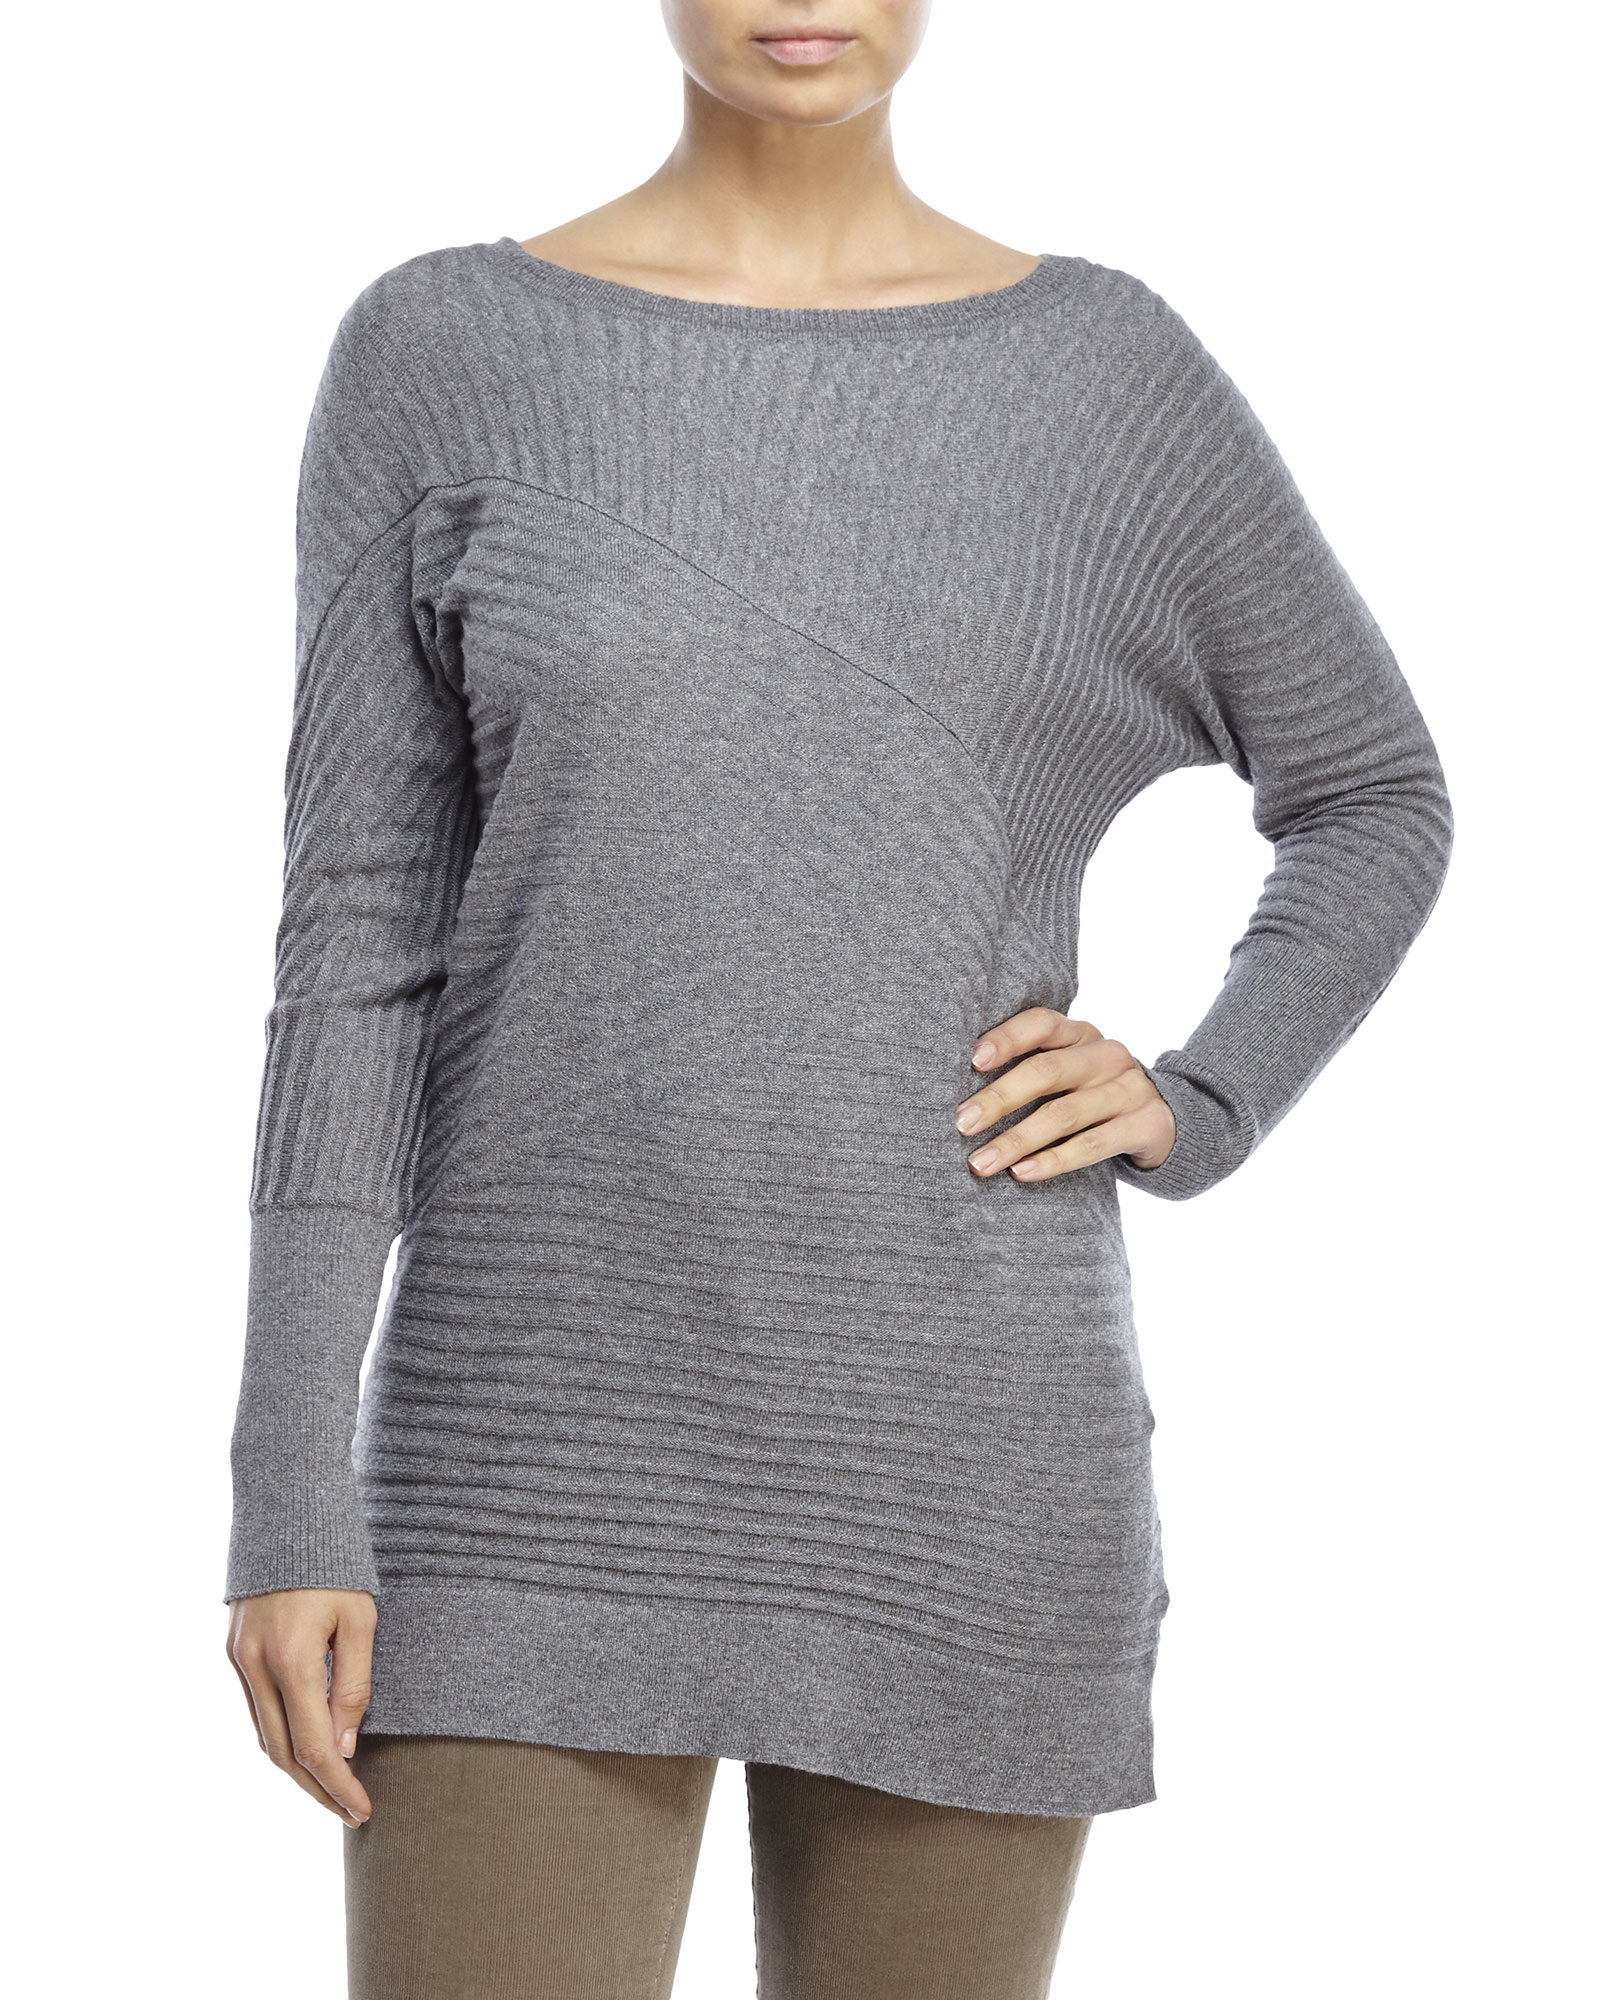 Joseph a Ribbed Knit Tunic Sweater in Gray | Lyst